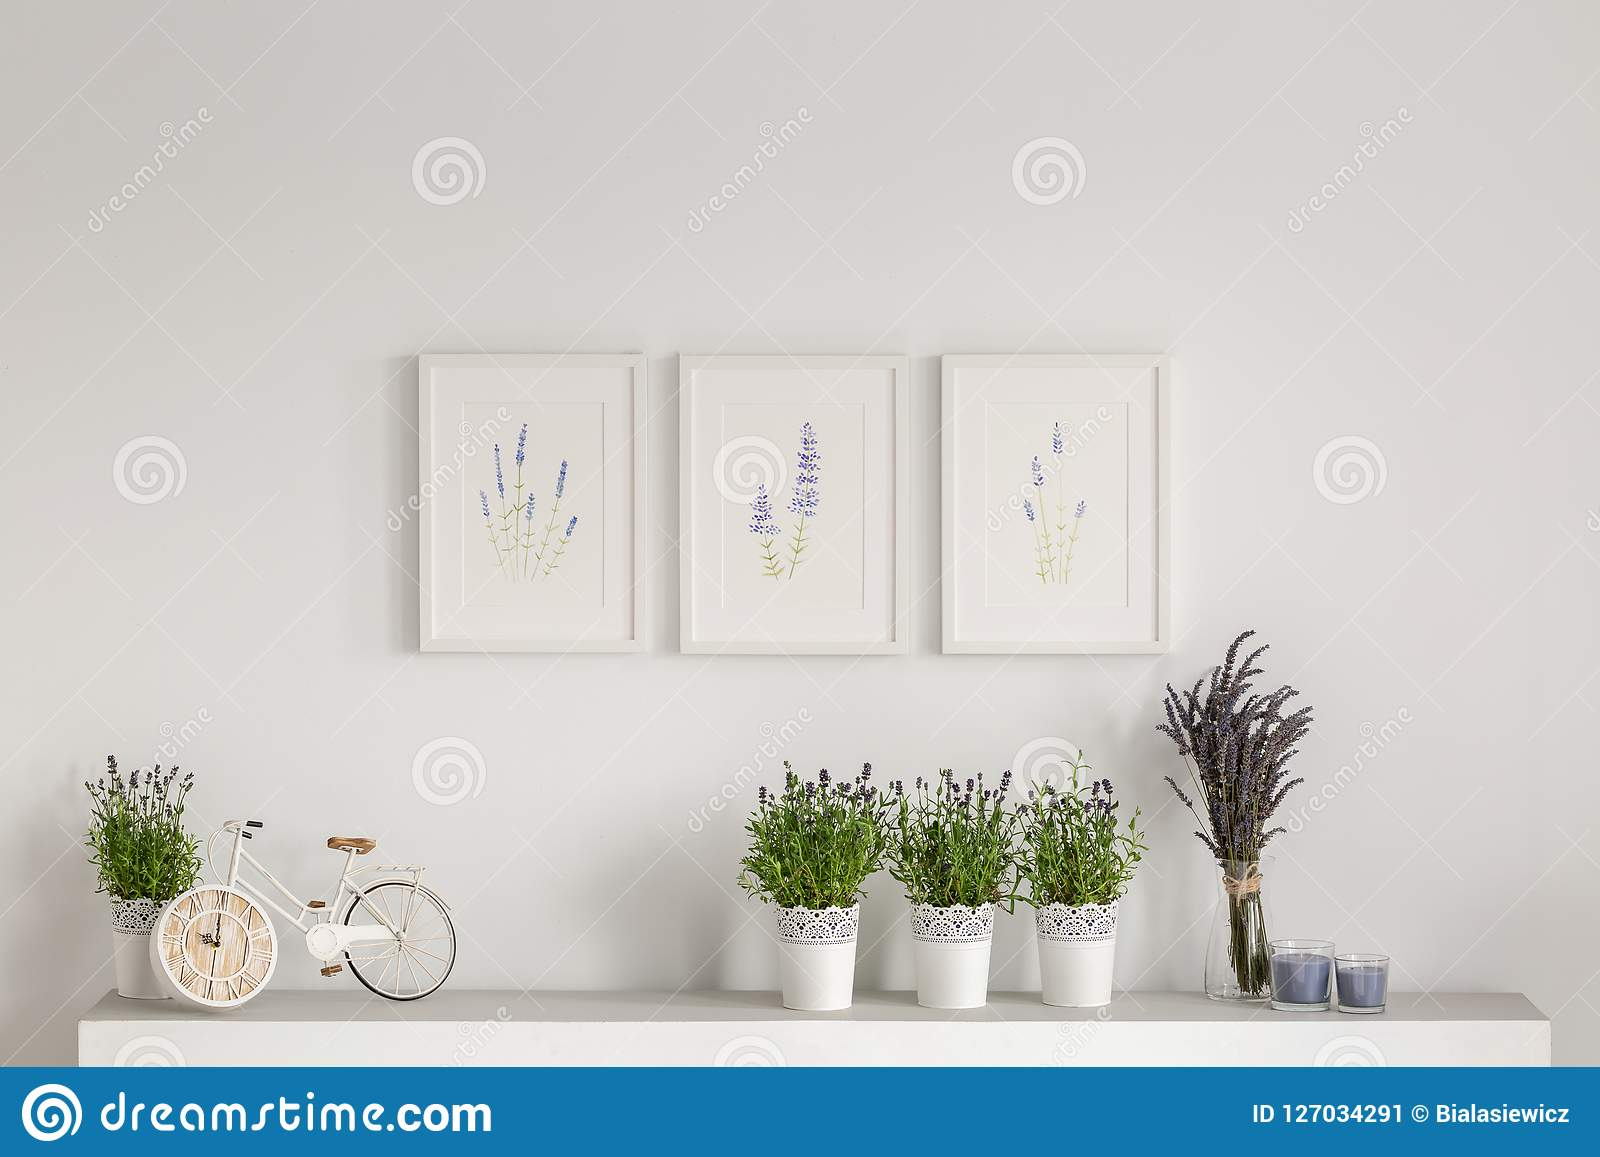 Flowers on cupboard against white wall with posters in minimal living room interior. Real photo